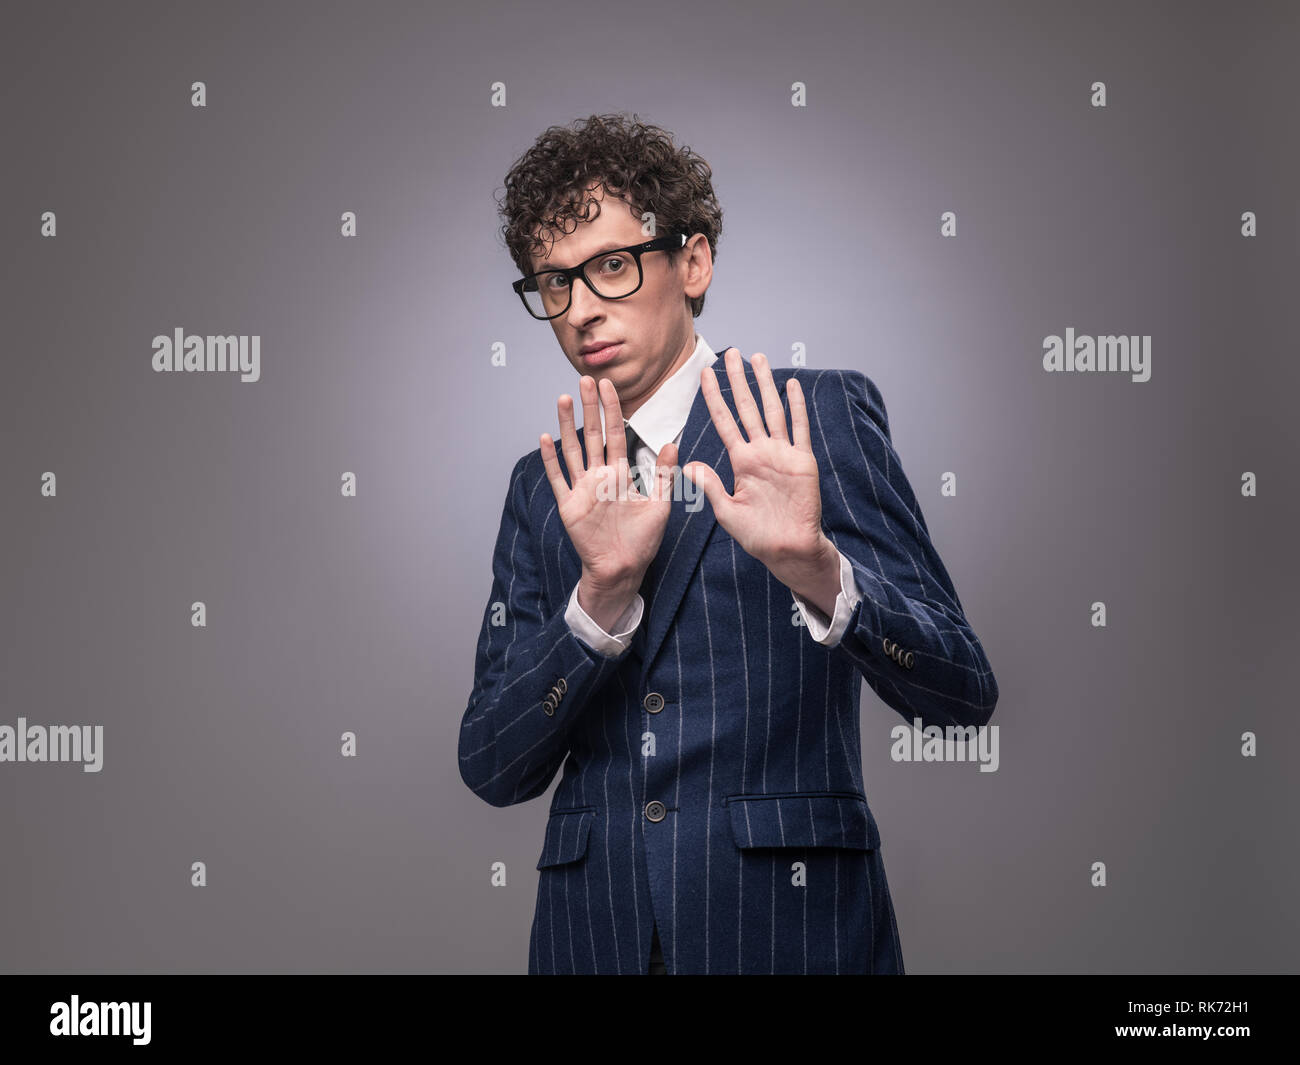 Shocked funny man in suit showing rejection sign and looking at camera. Uninterested businessman making stop gesture. Refusing concept - Stock Image